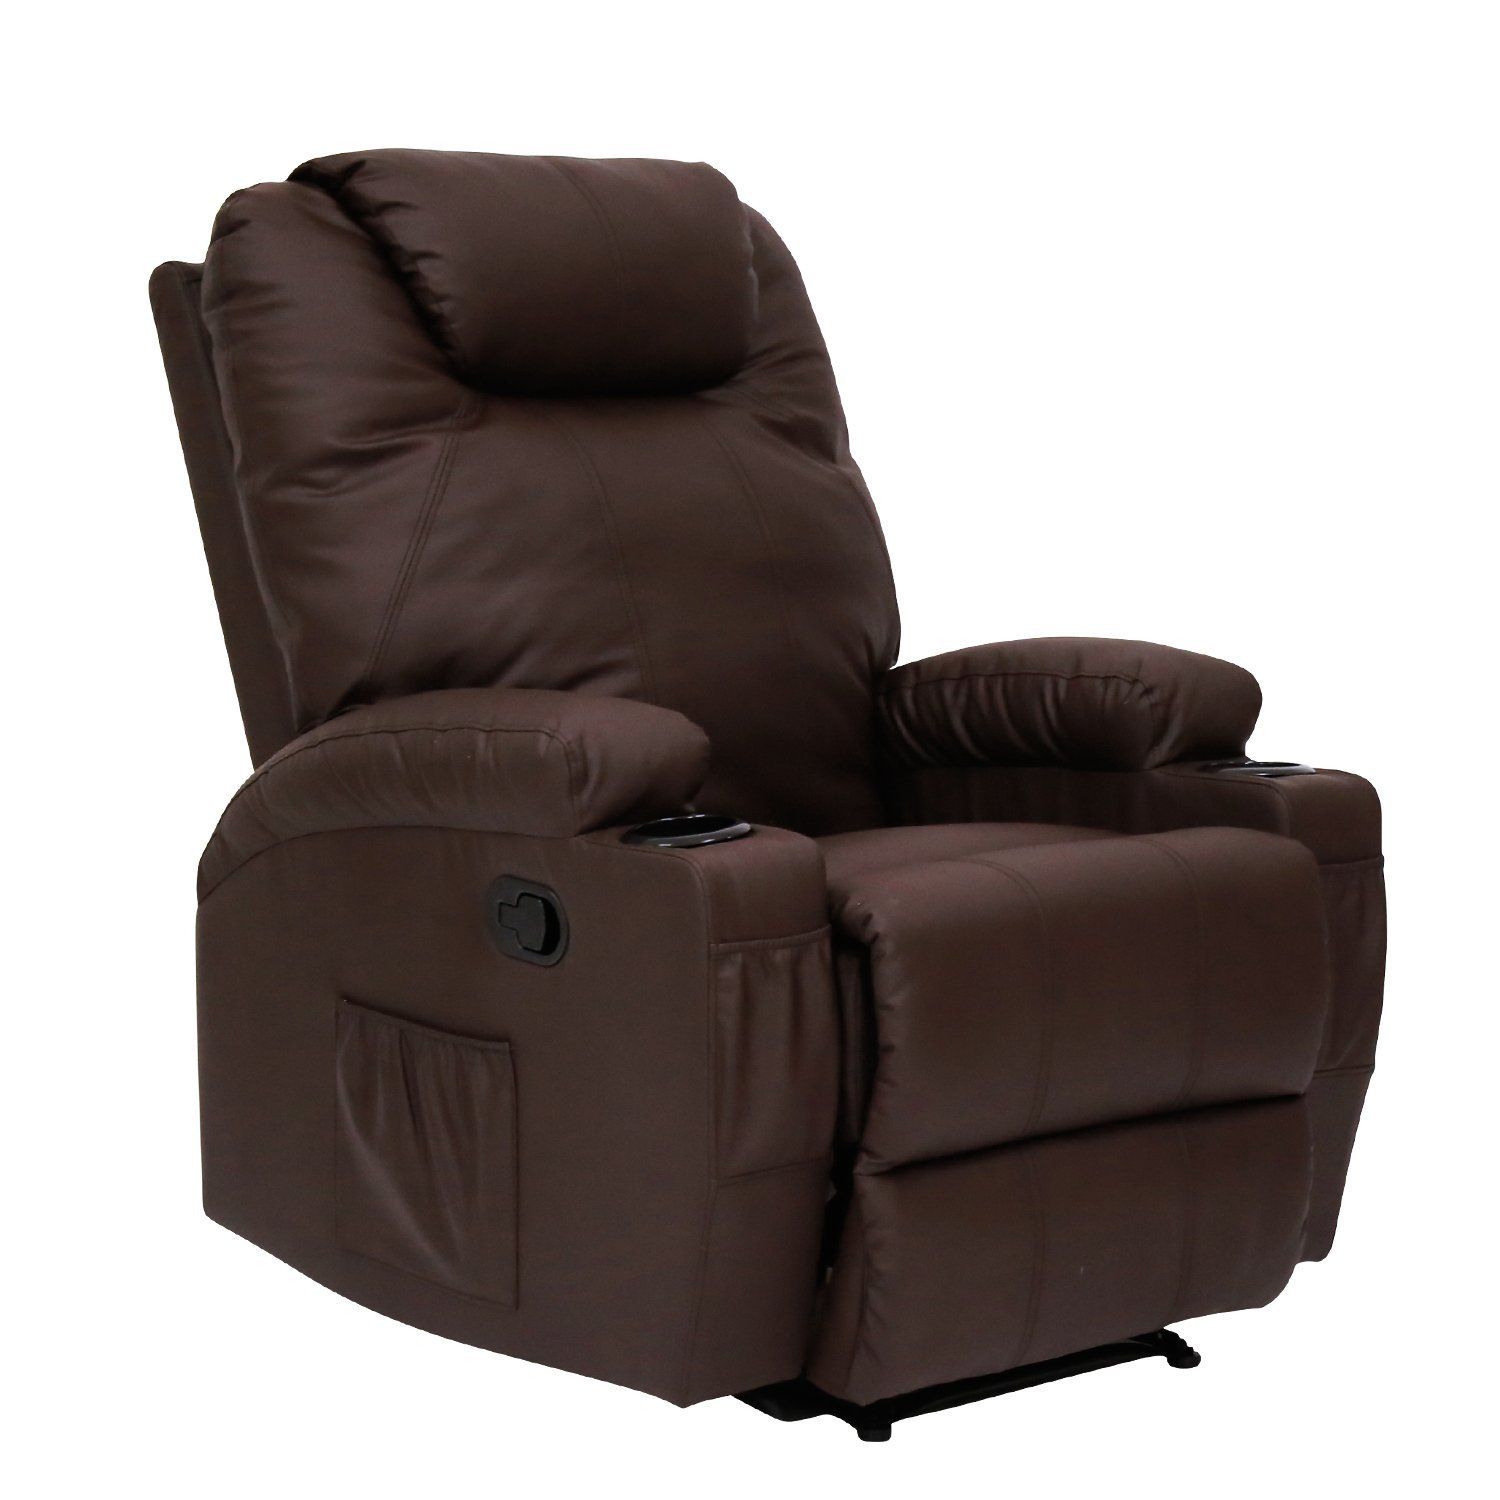 peach tree recliner massage sofa chair deluxe ergonomic lounge couch rh pinterest com